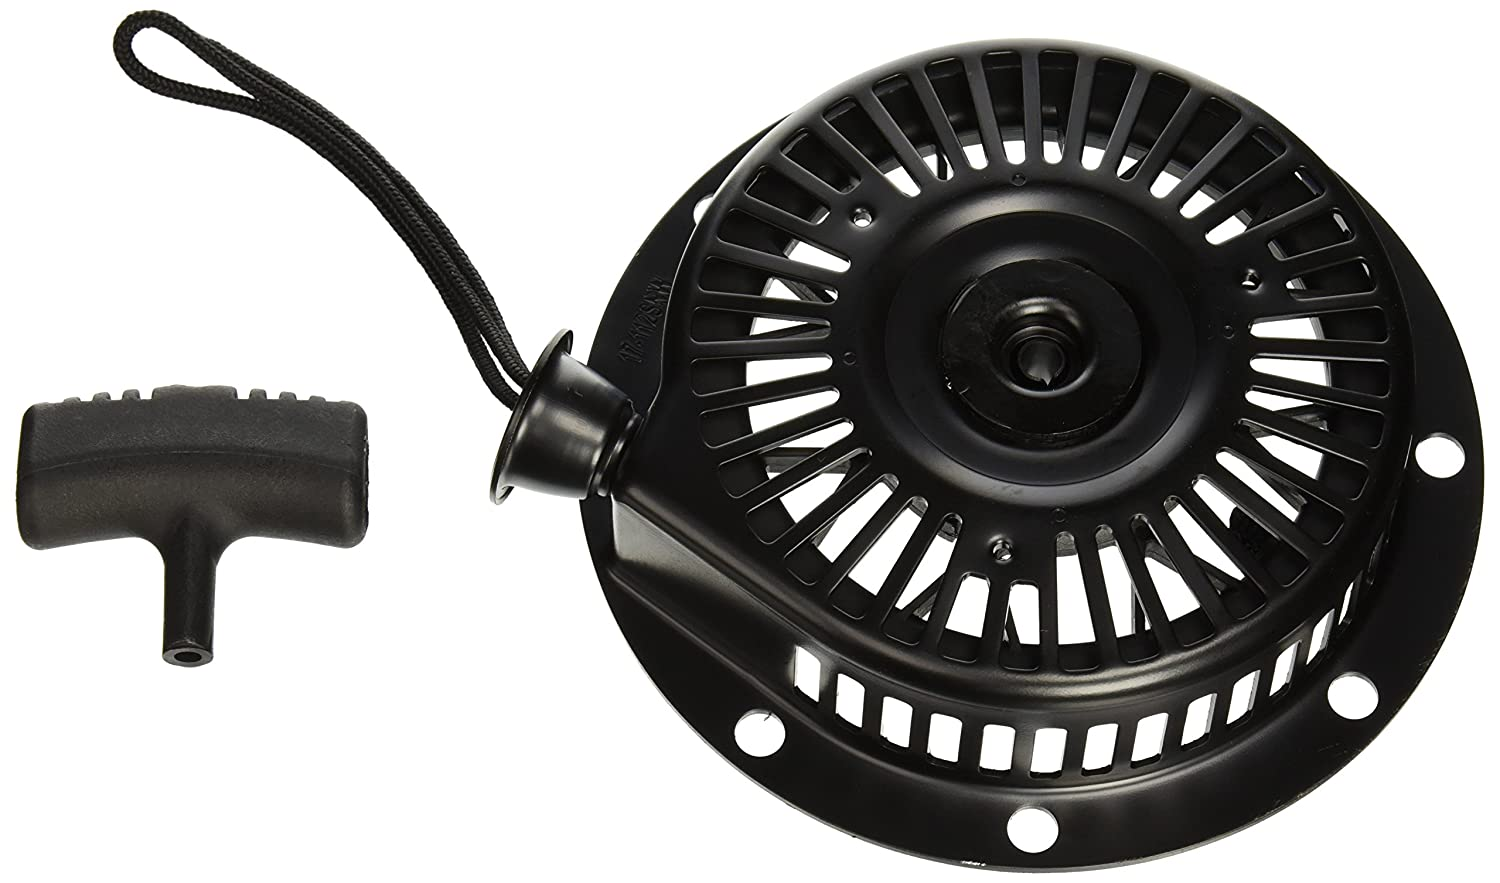 Maxpower 12657 Starter Recoil Assembly Replaces Tecumseh Have A Snow Blower With 85 Hp Model Lh318sa 590749 590749a 590789 Garden Outdoor